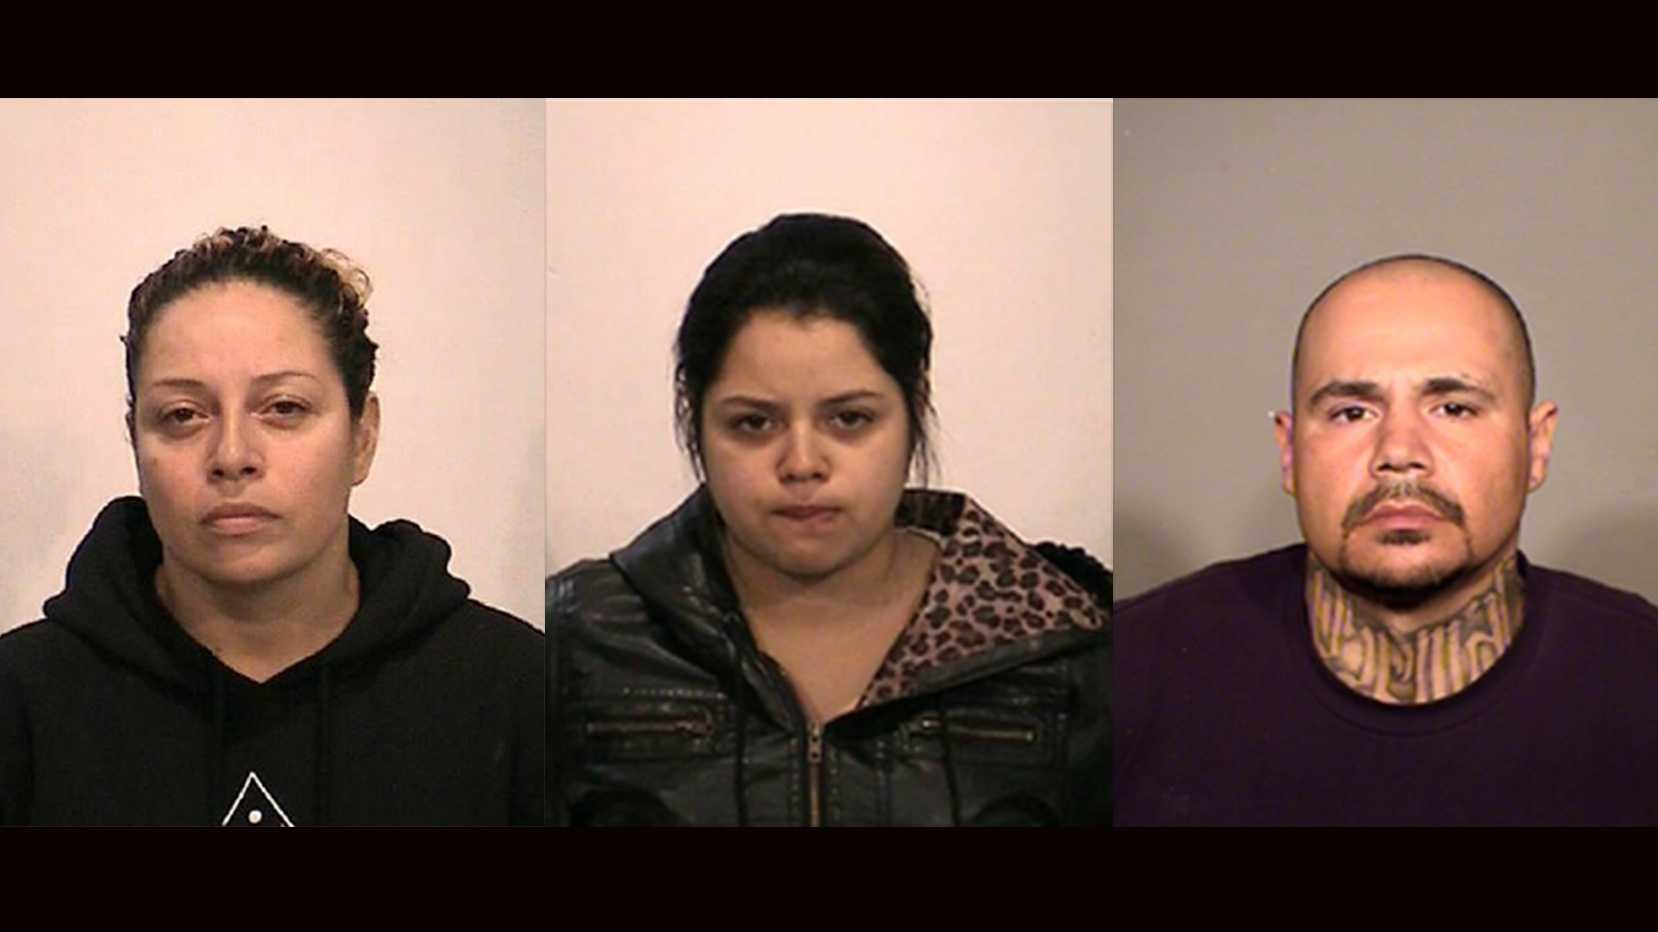 Rosemary Bazan (left), 38, Salyce Bazan (middle), 19, and Manuel Flores (right), 38, were arrested Tuesday on elder abuse charges, police said.